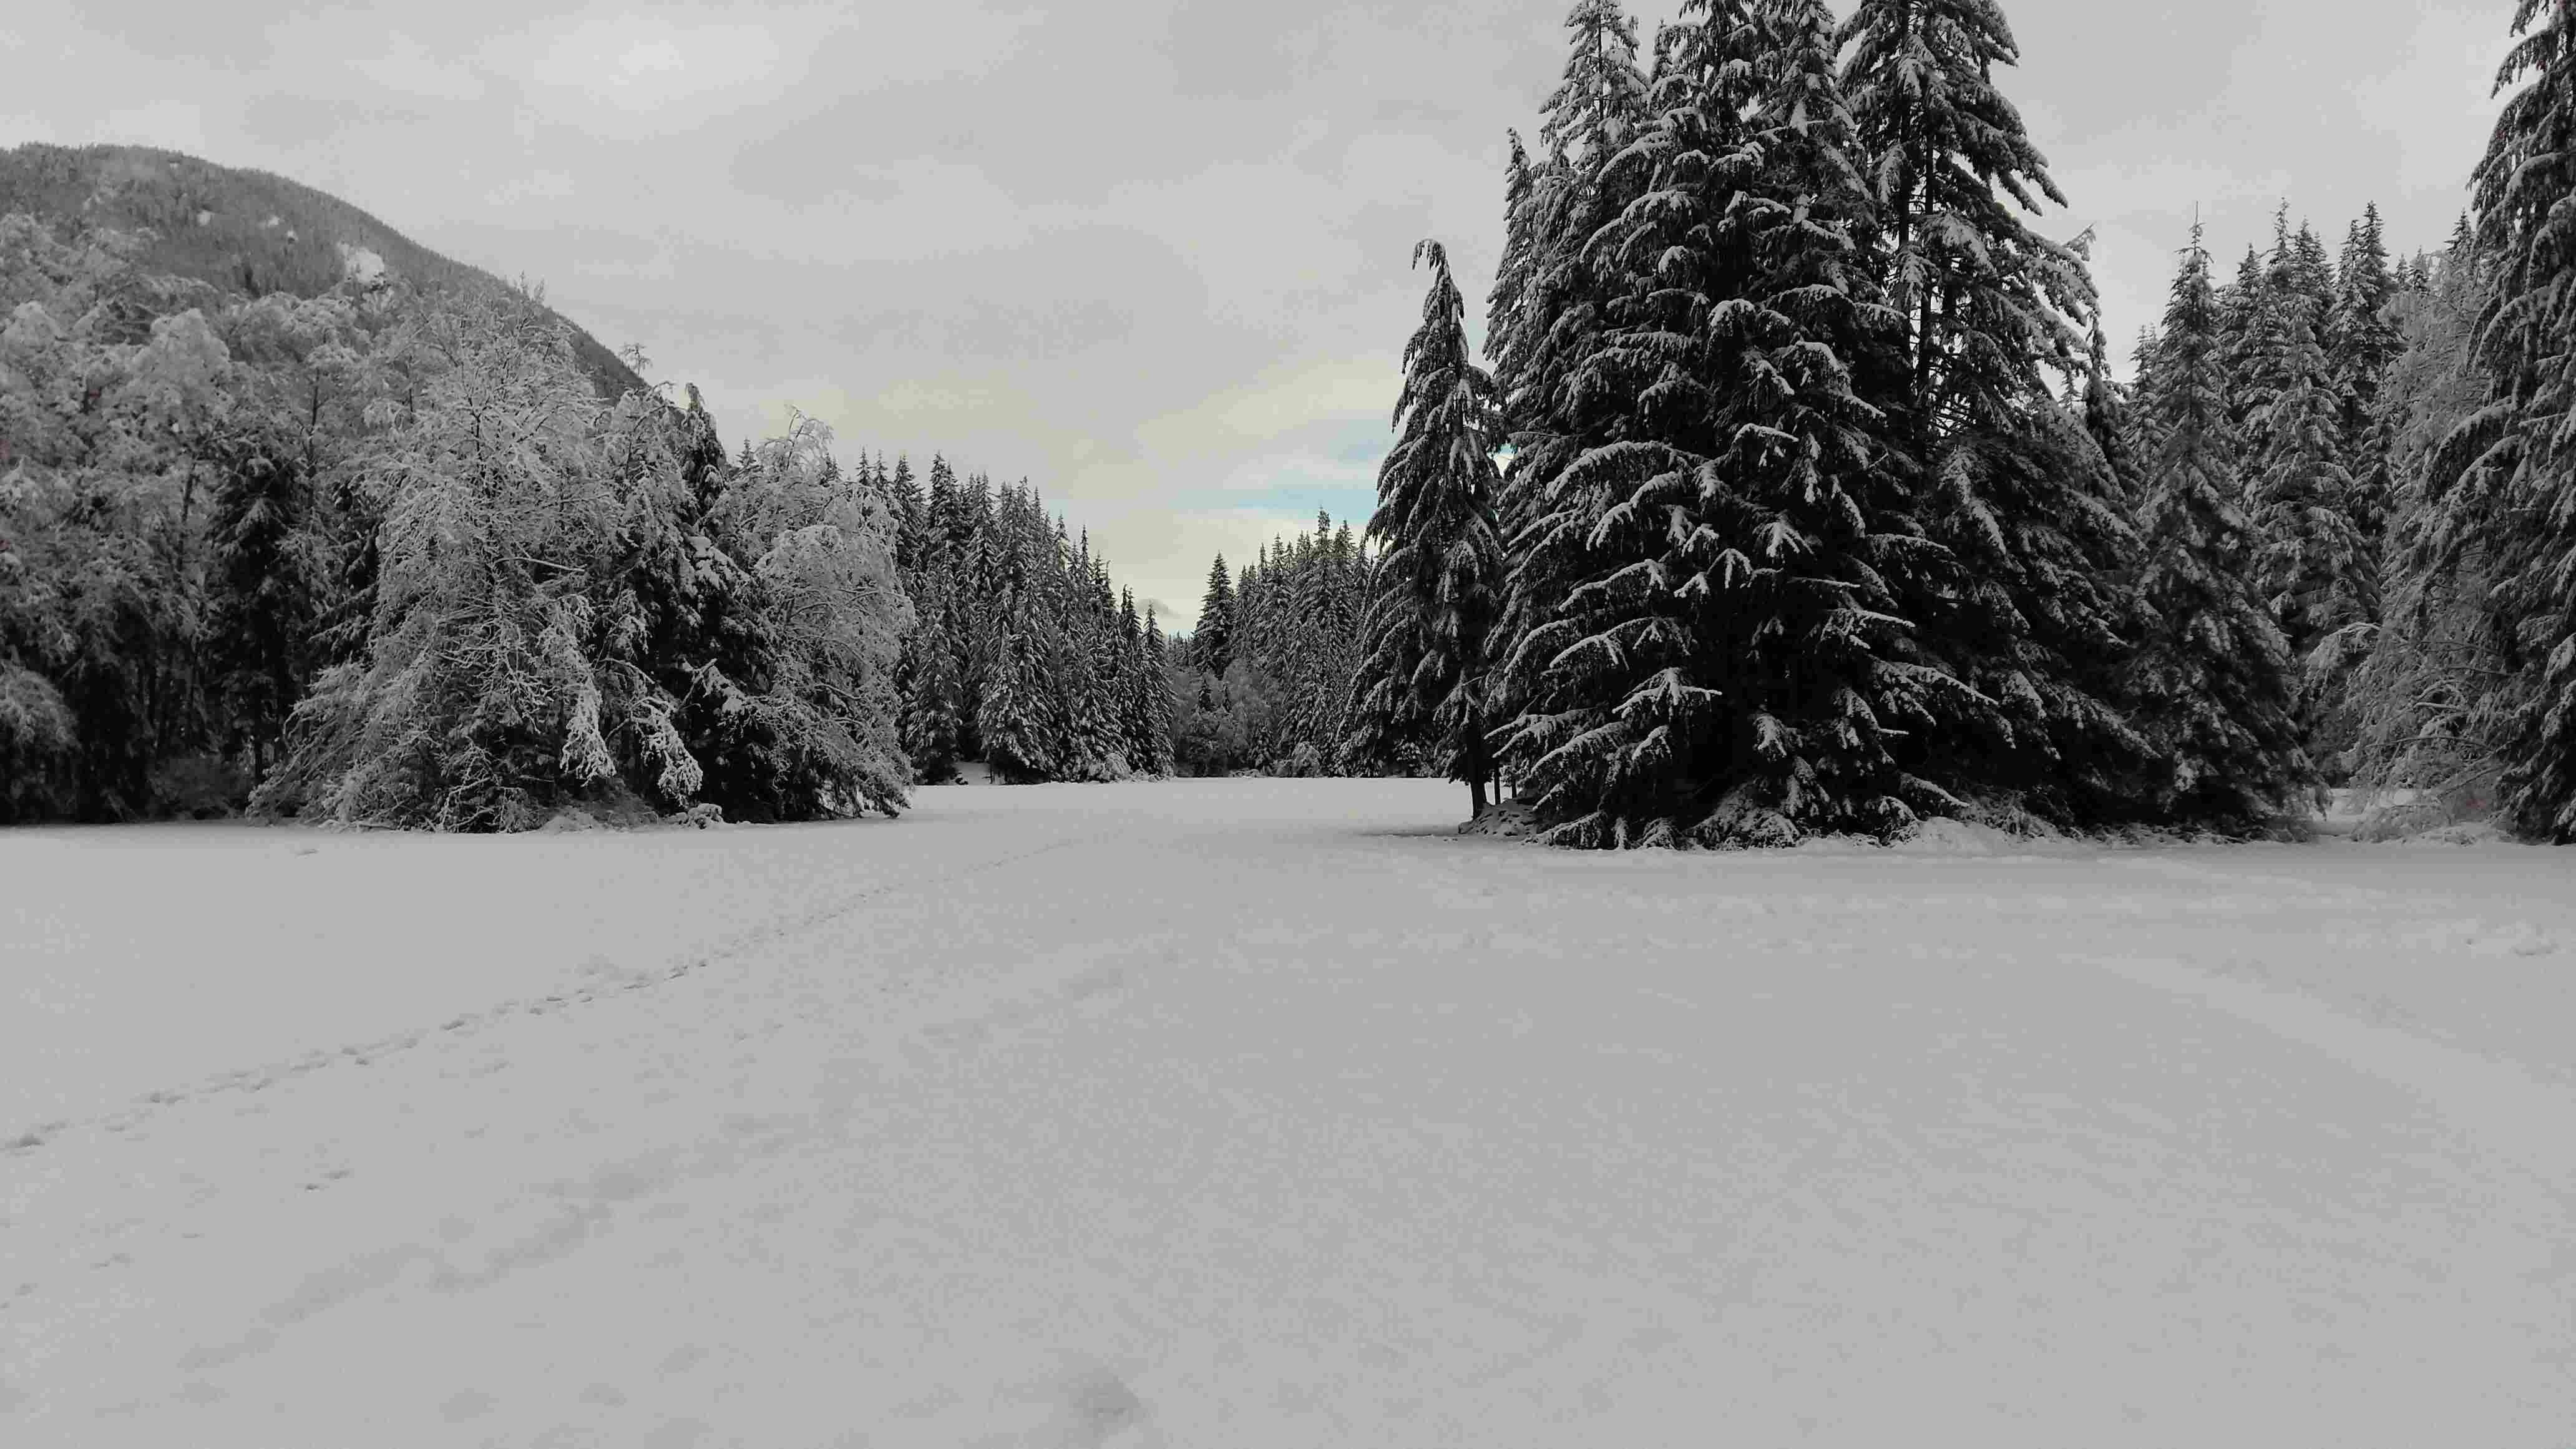 Rice lake, north Vancouver winter trail